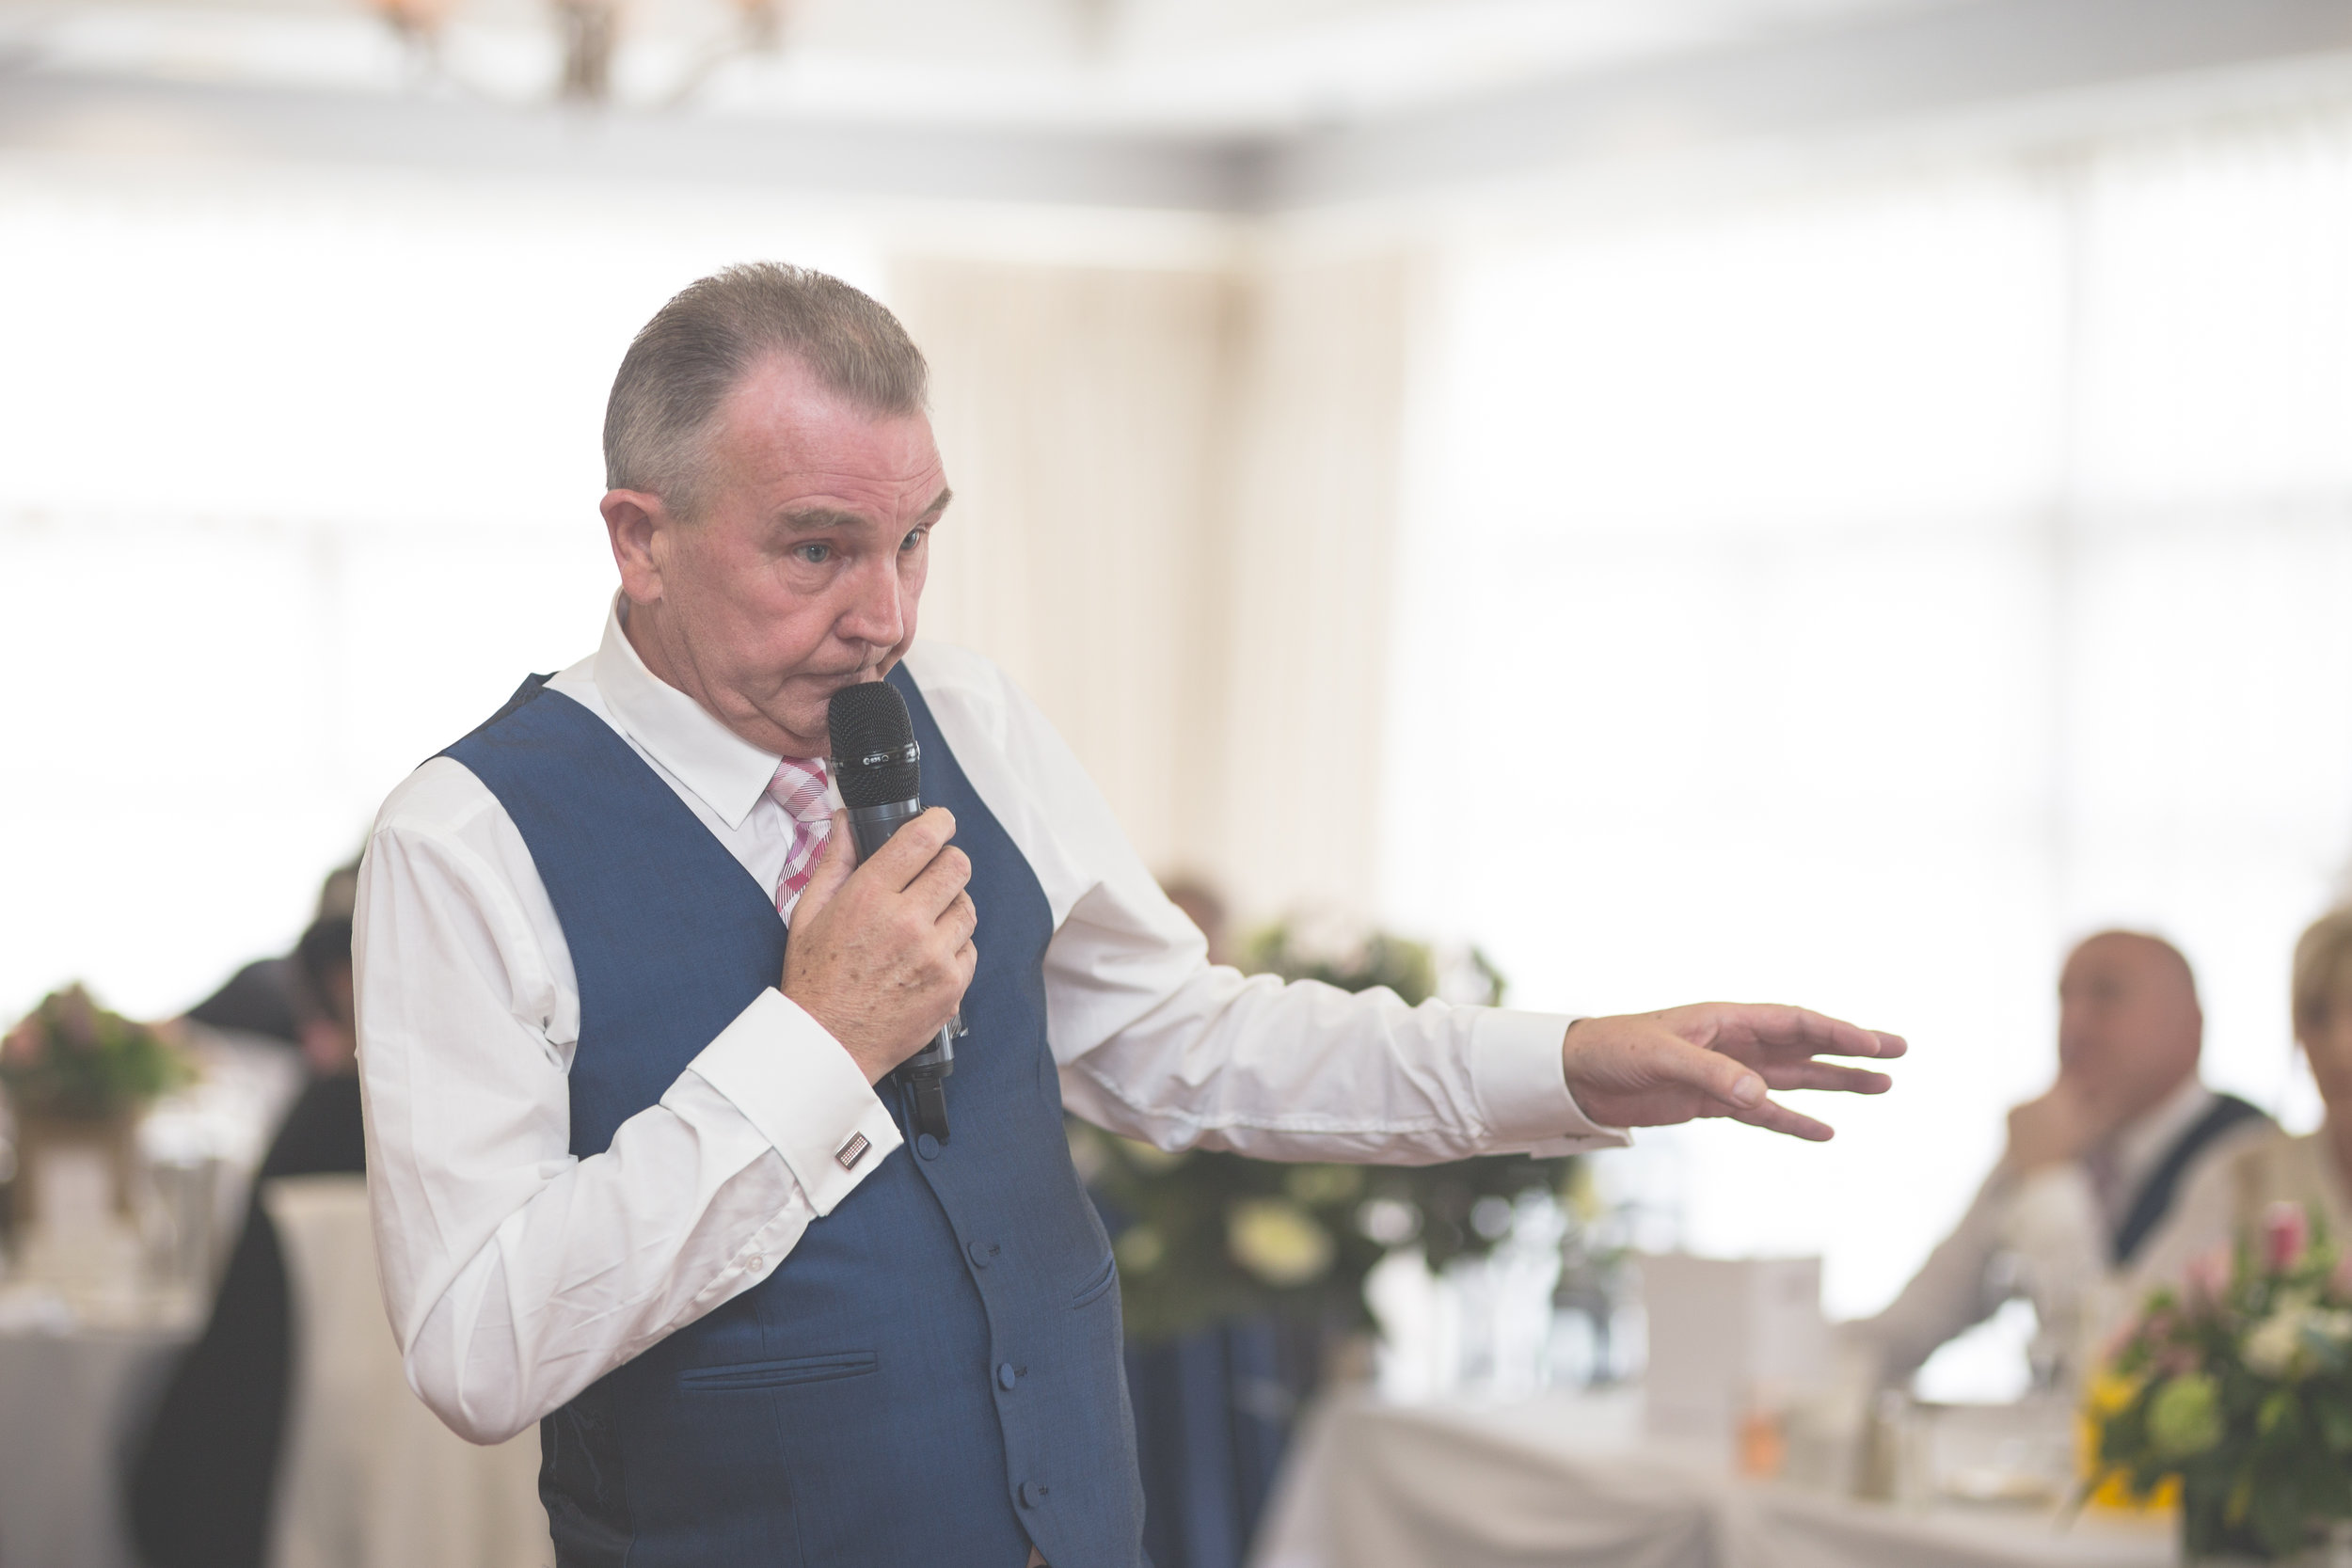 Antoinette & Stephen - Speeches | Brian McEwan Photography | Wedding Photographer Northern Ireland 56.jpg